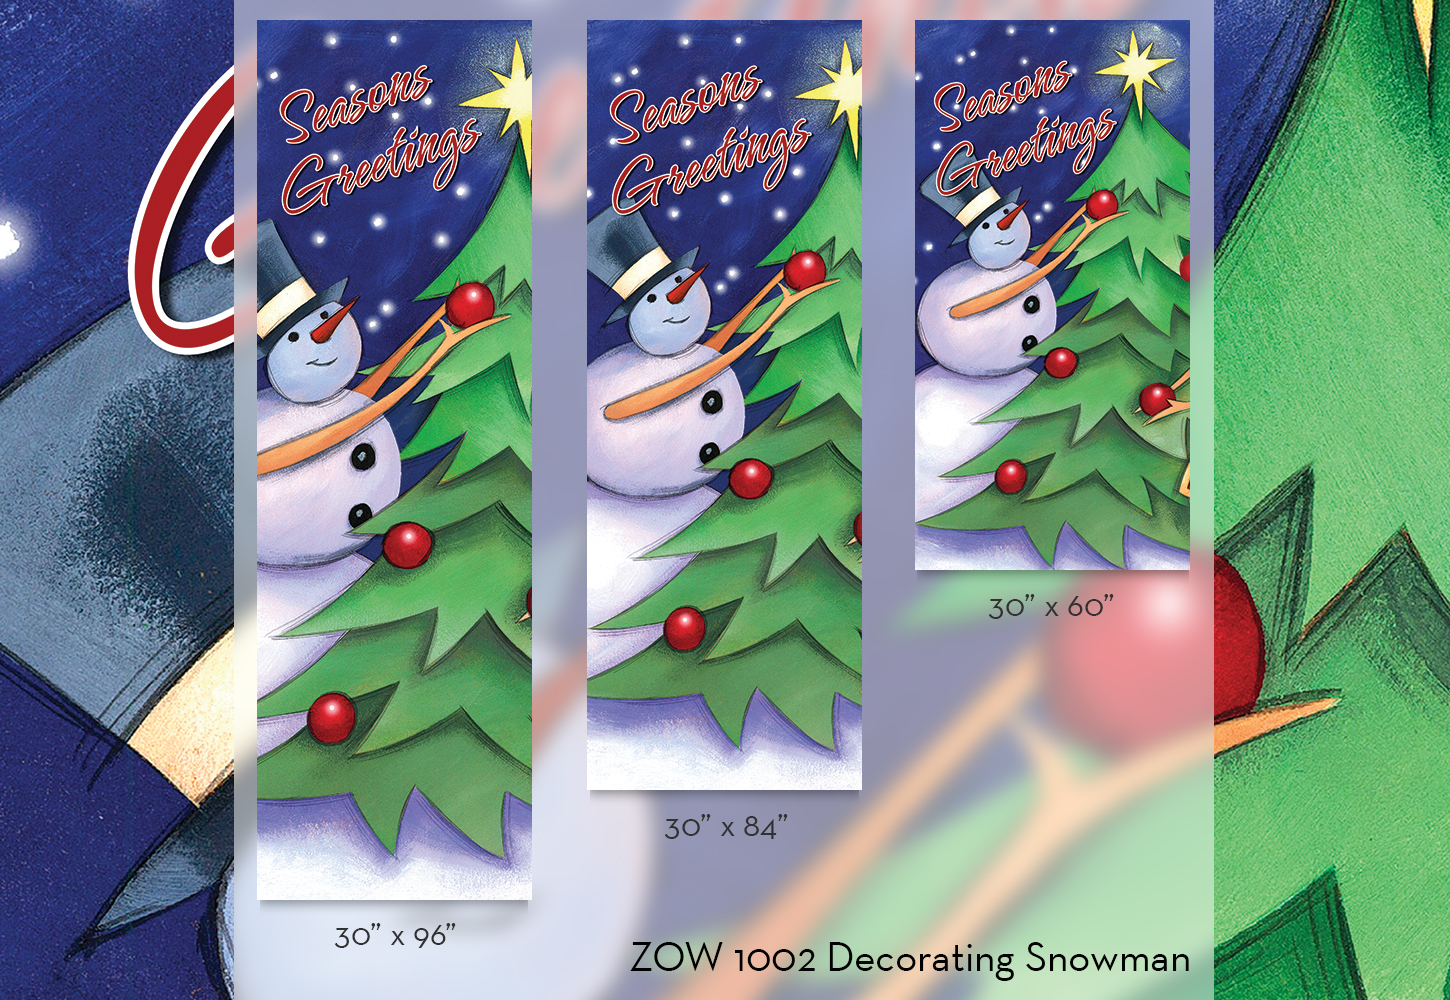 ZOW 1002 Decorating Snowman